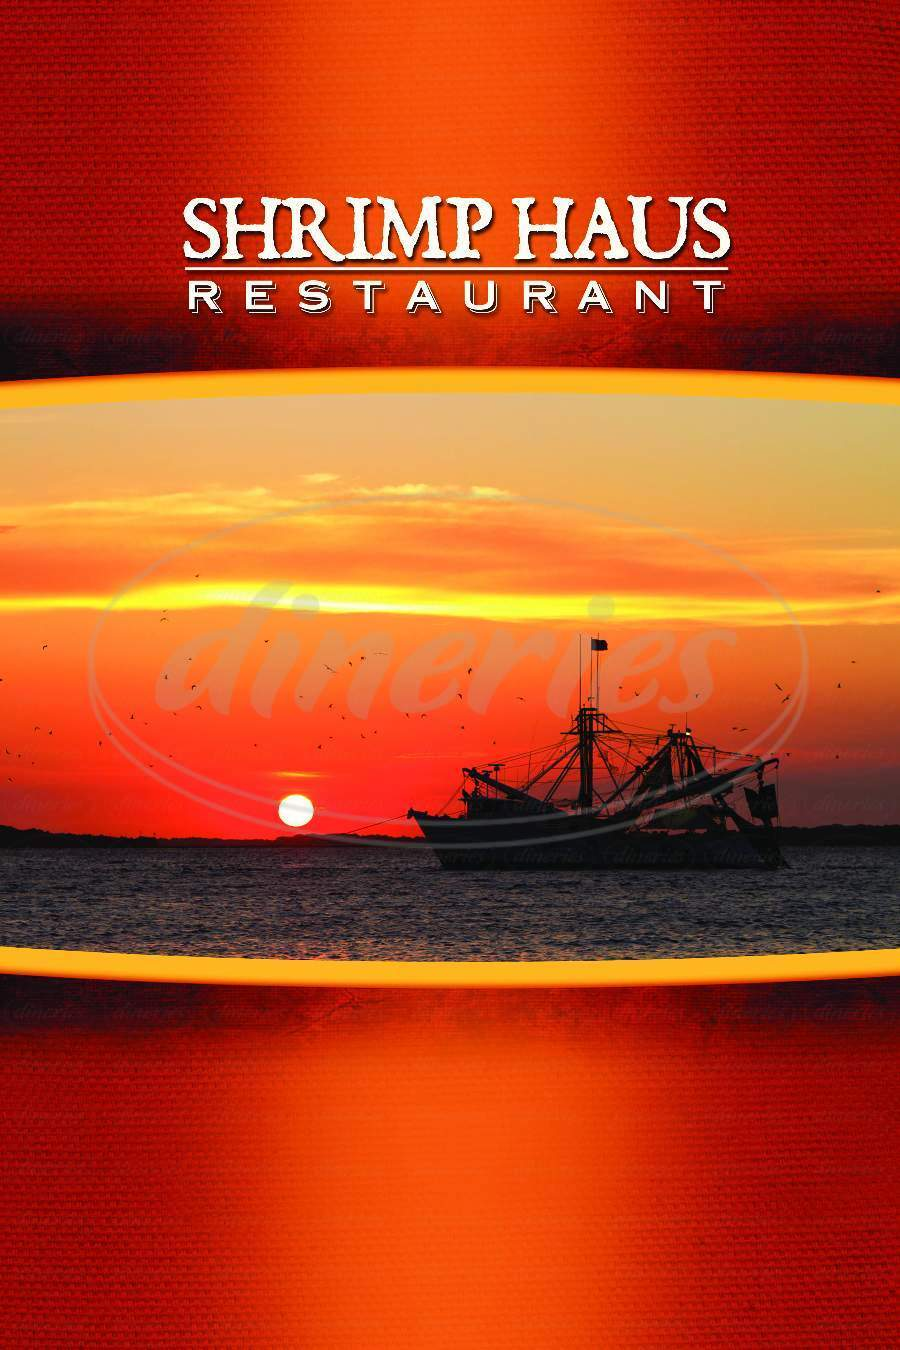 menu for The Shrimp Haus Restaurant